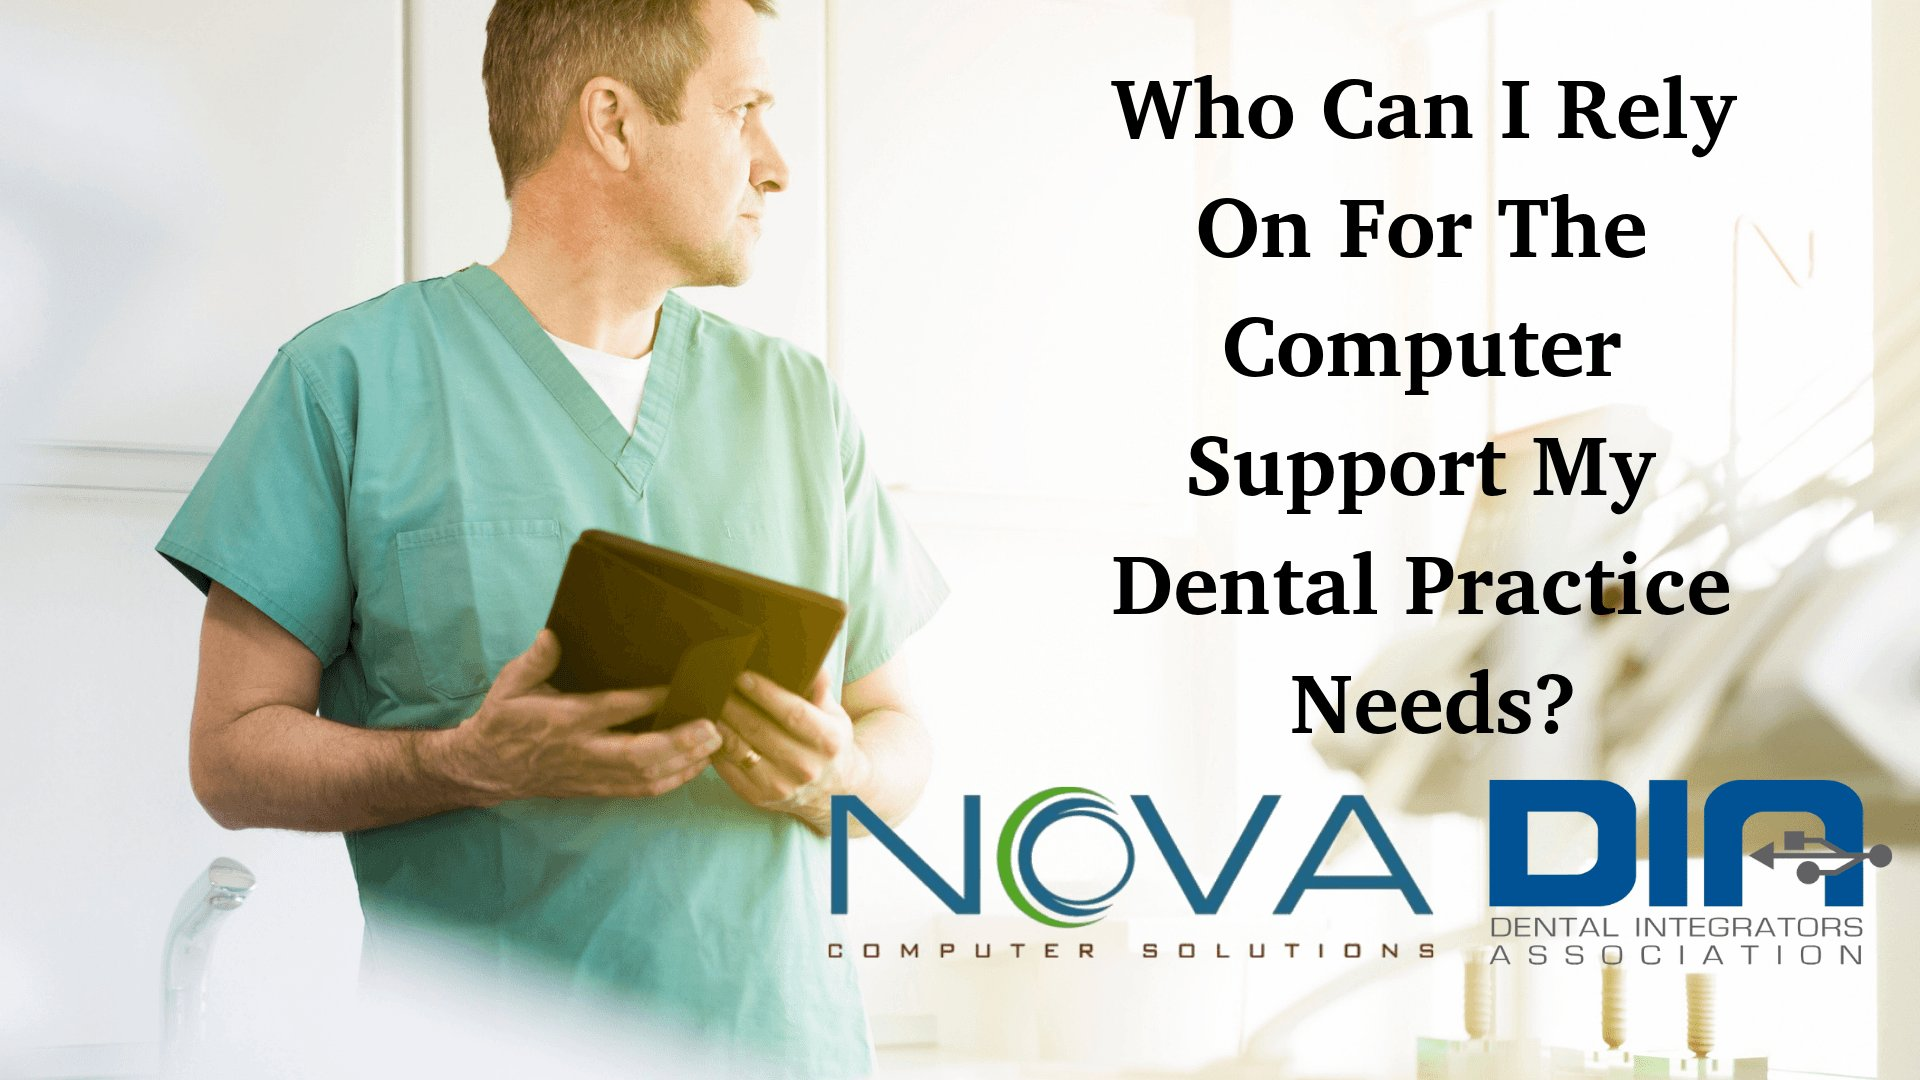 Who Can I Rely On For The Computer Support My Dental Practice Needs_